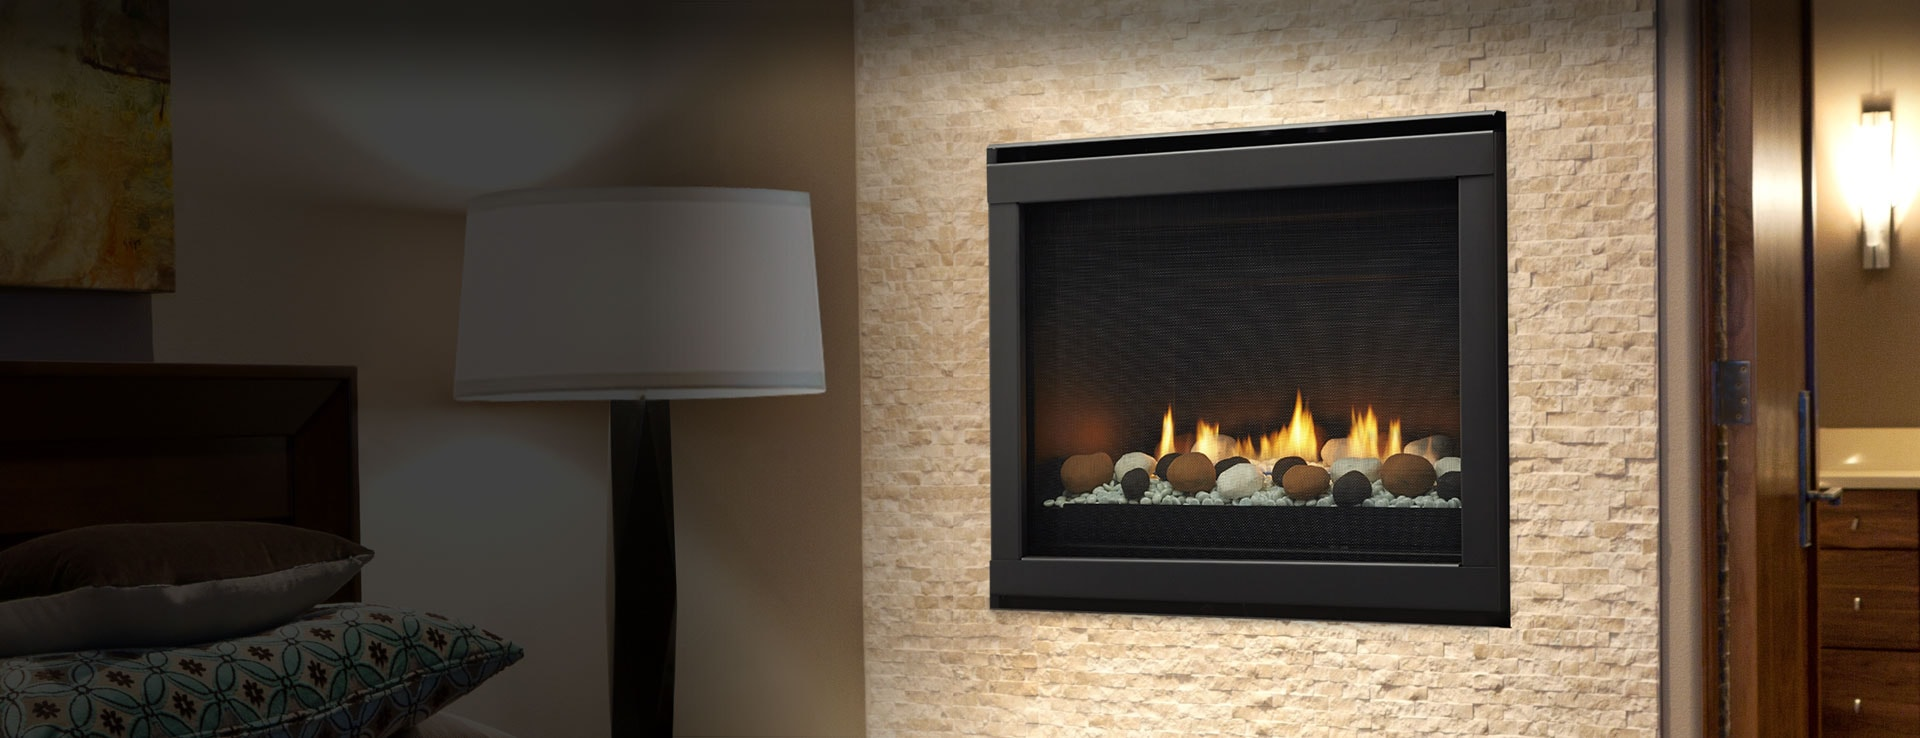 eclipse compact gas fireplace series heatilator